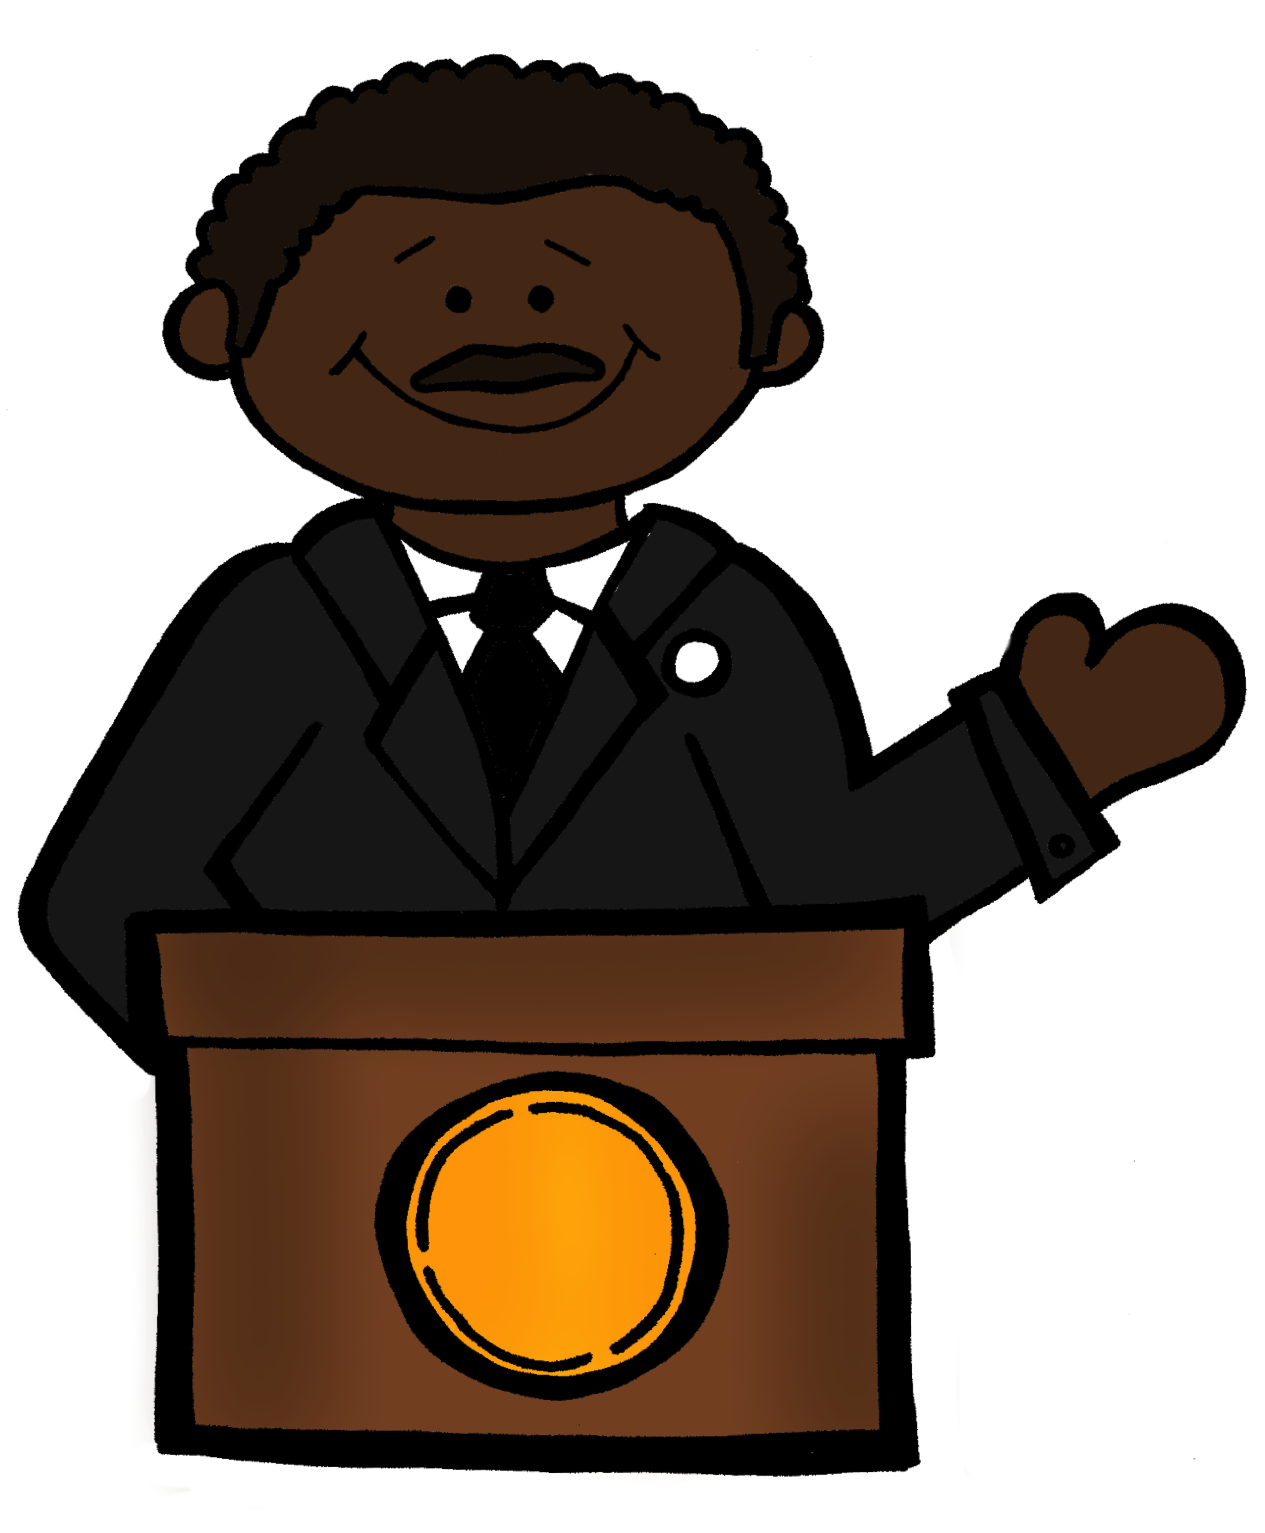 Mlk Clipart - Clipart library-Mlk Clipart - Clipart library-10